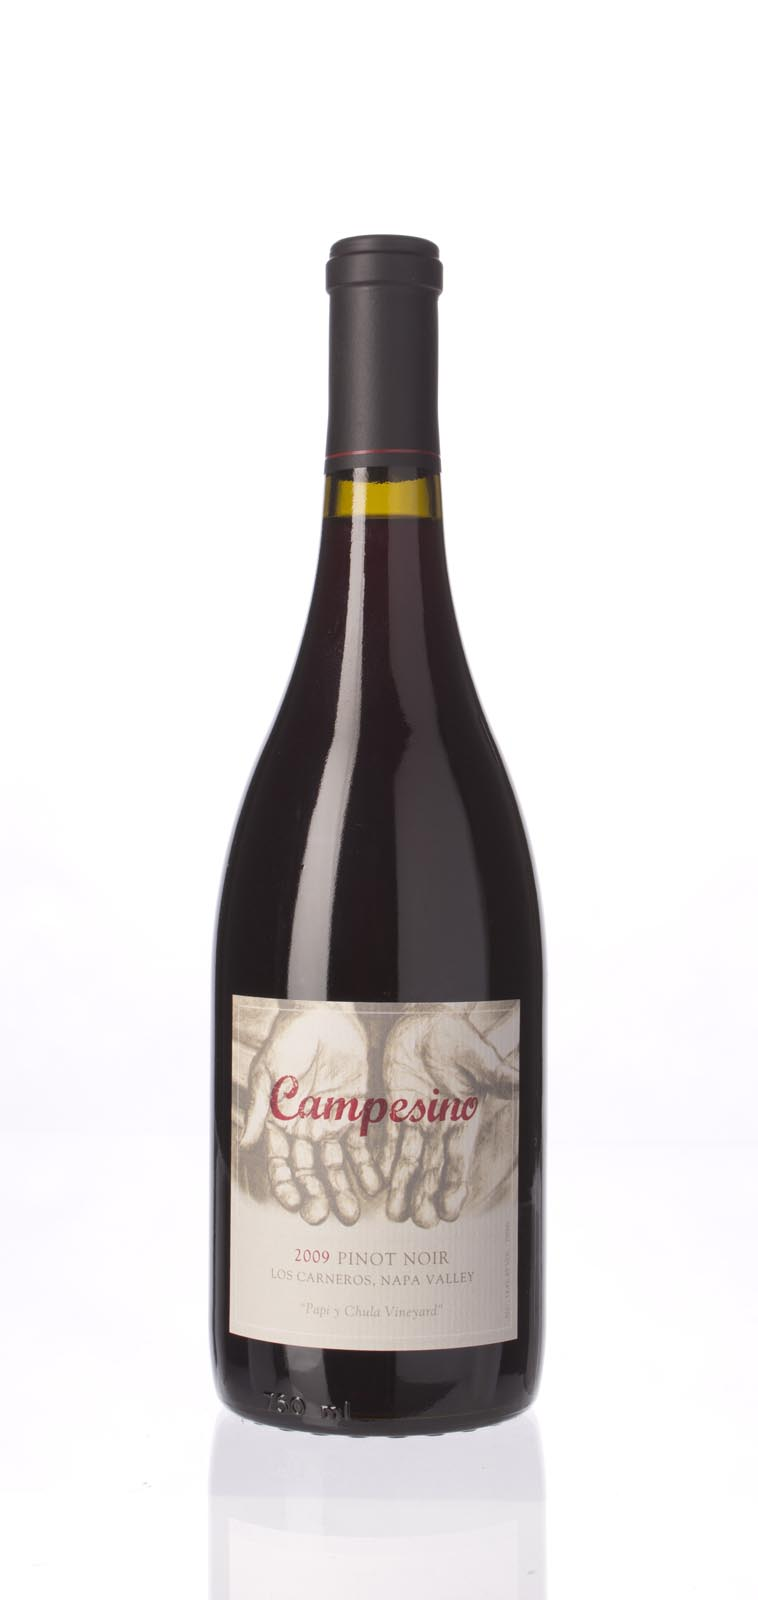 Campesino Pinot Noir Papi y Chula Vineyard 2009,  () from The BPW - Merchants of rare and fine wines.